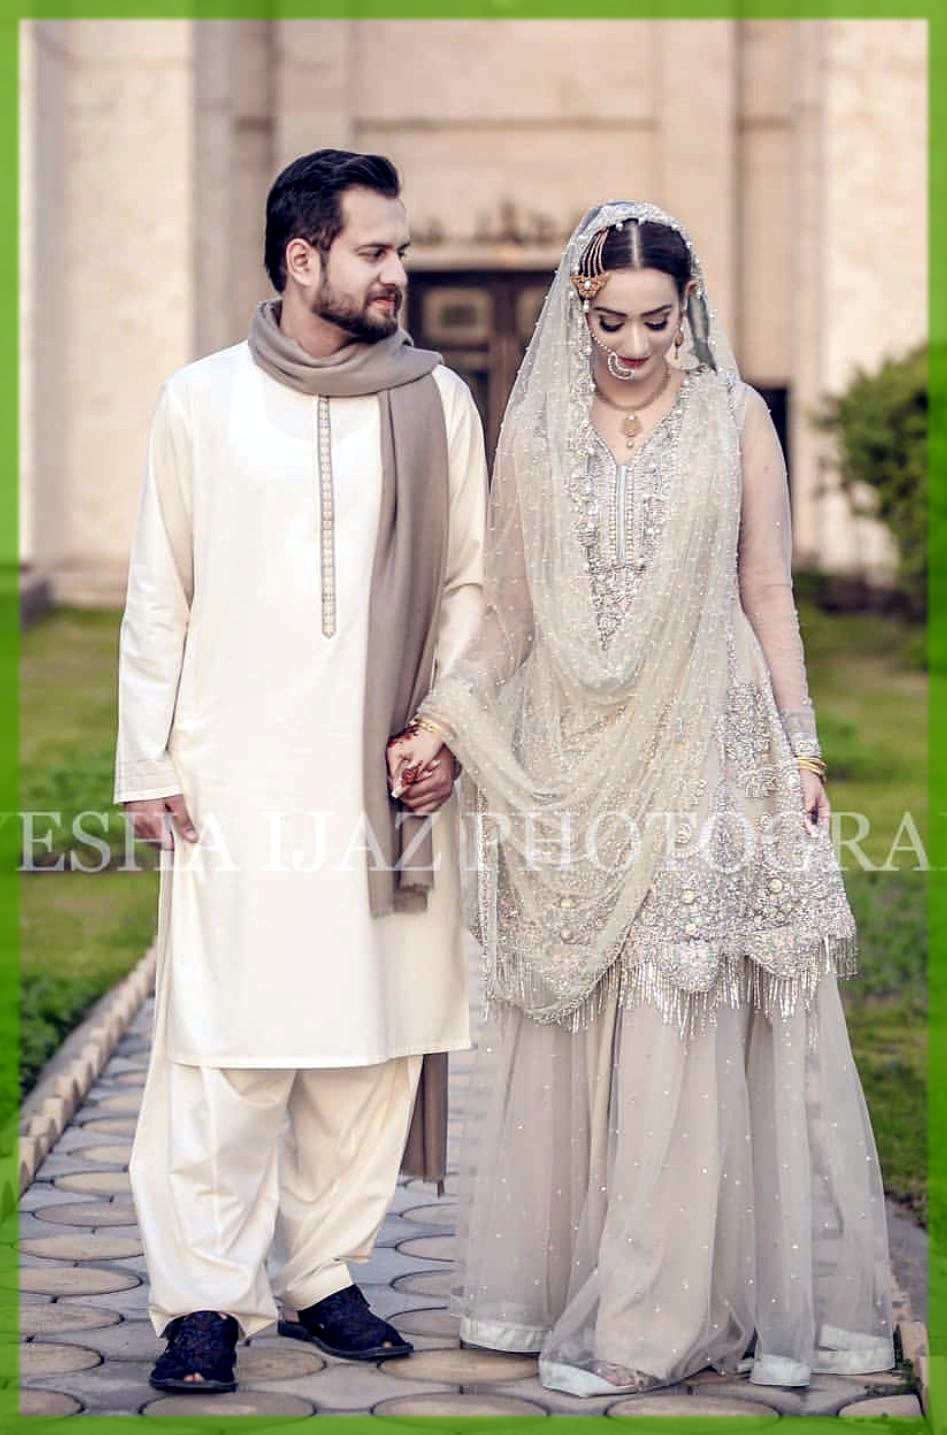 men wear simple shalwar kameez